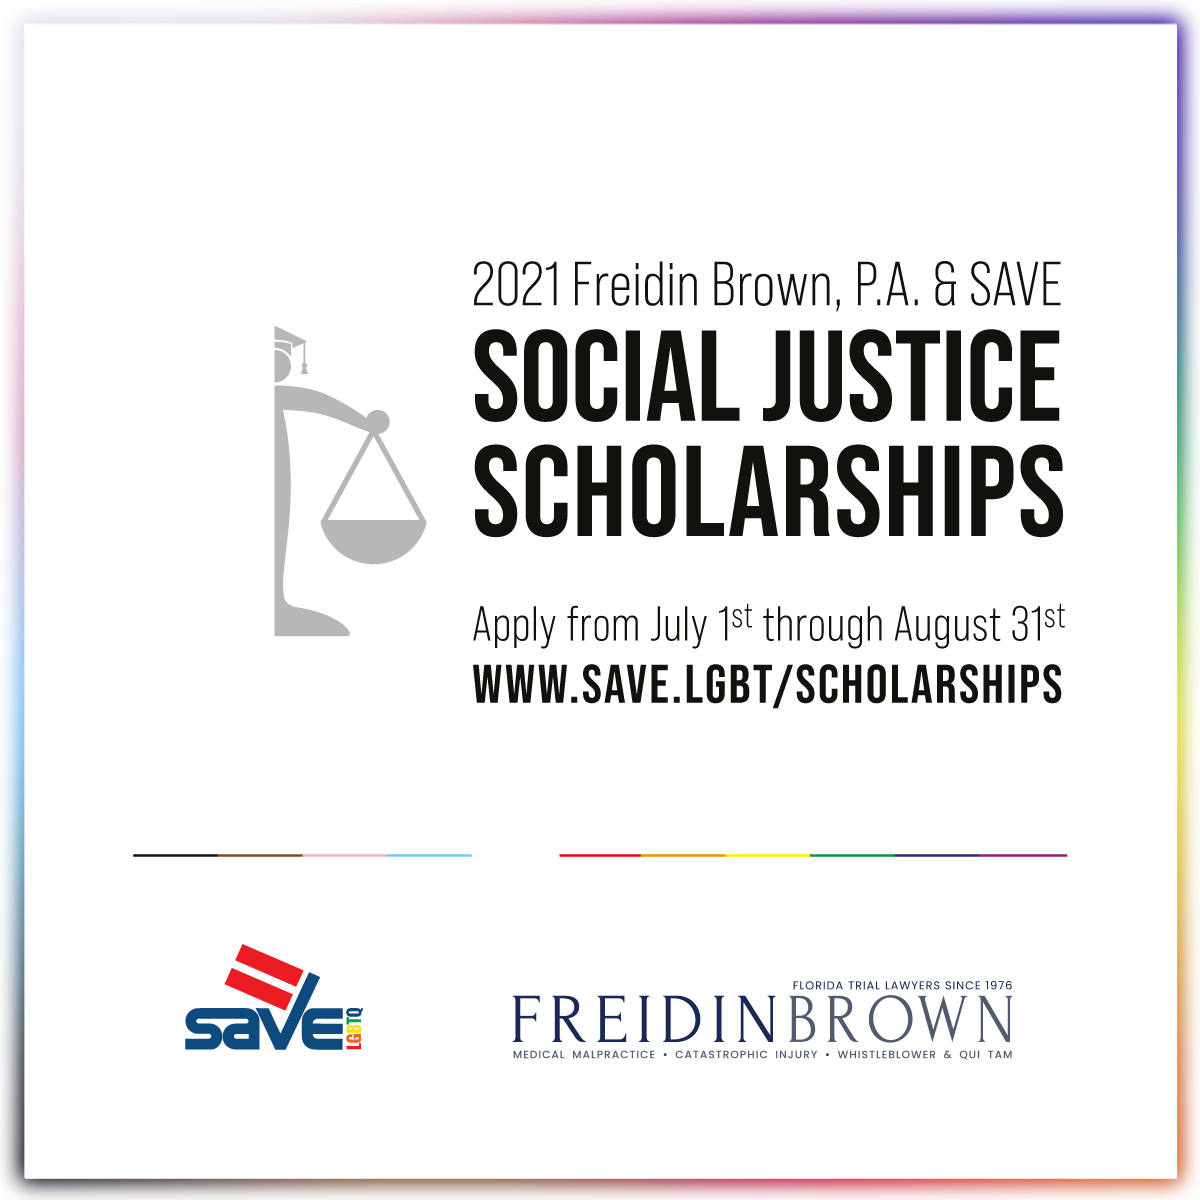 Freidin Brown, P.A. & SAVE Social Justice Scholarships